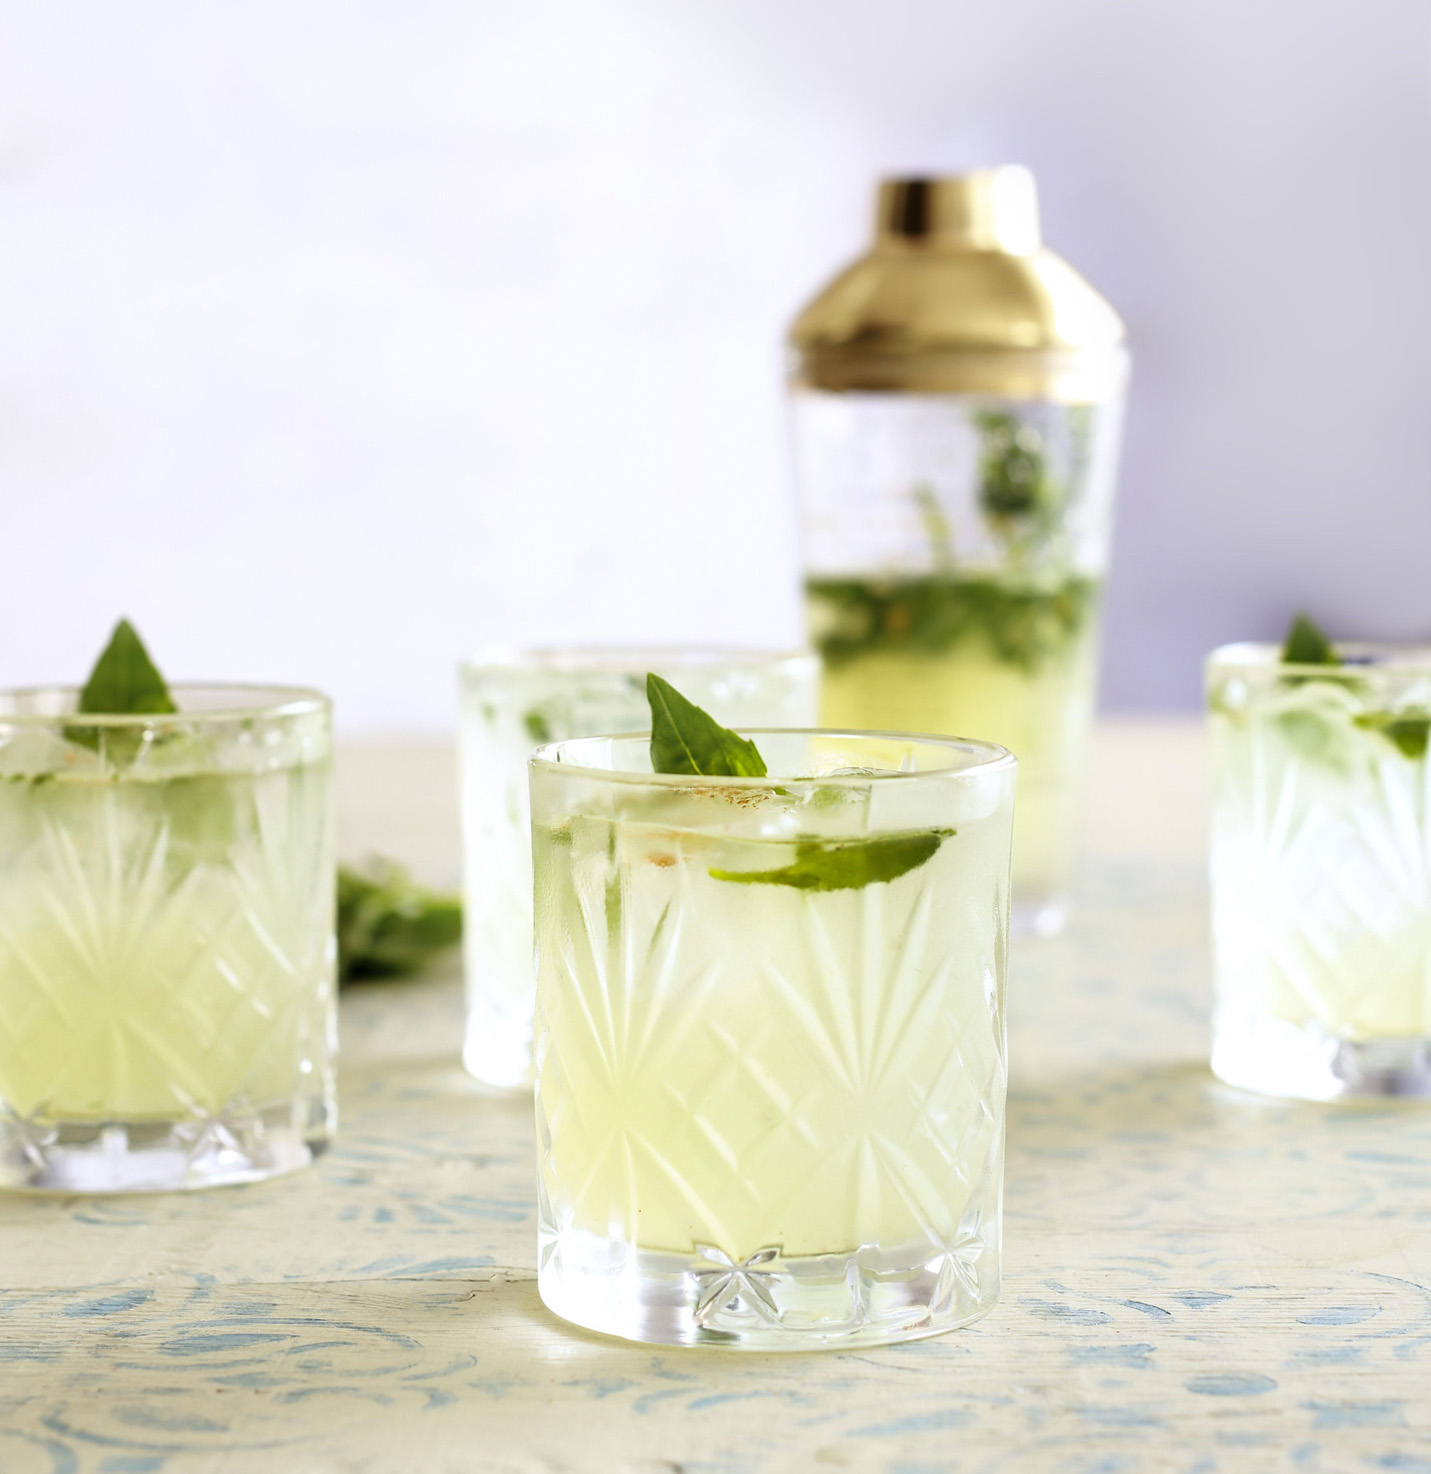 The Smirnoff Spiced Lime cocktail